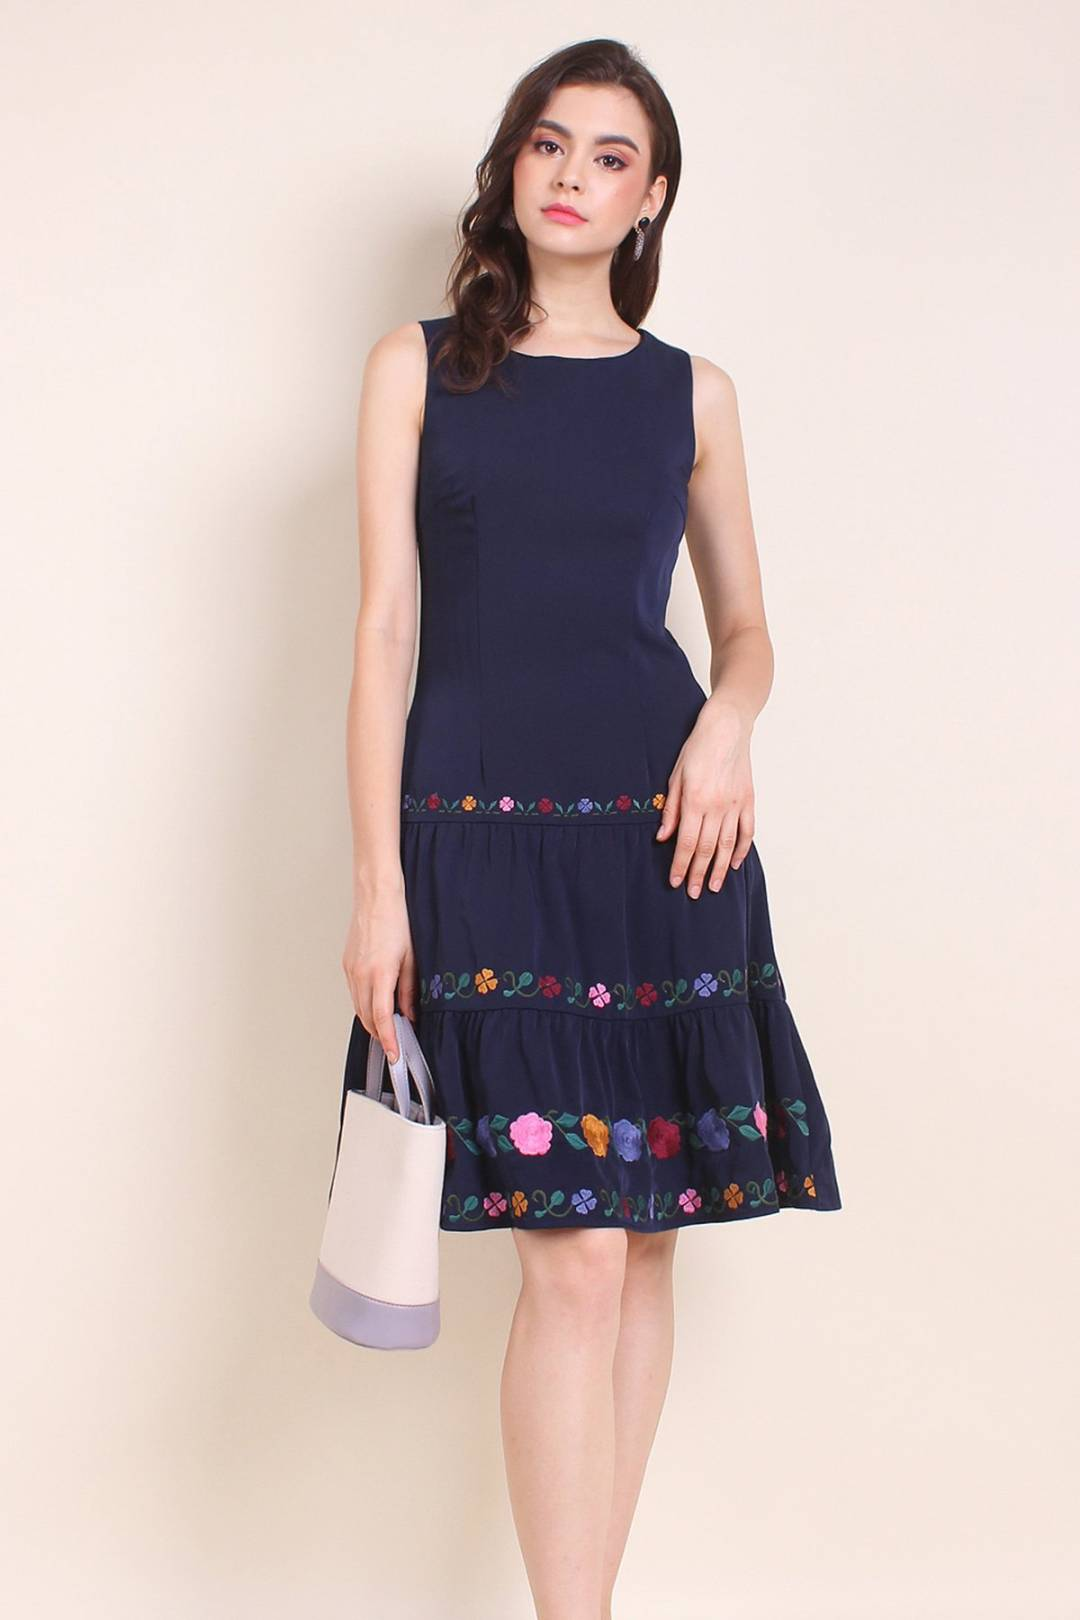 MADEBYNM GARDENIA FLORAL EMBROIDERY A-LINE TIER DRESS IN NAVY BLUE [XS/S/M/L/XL]